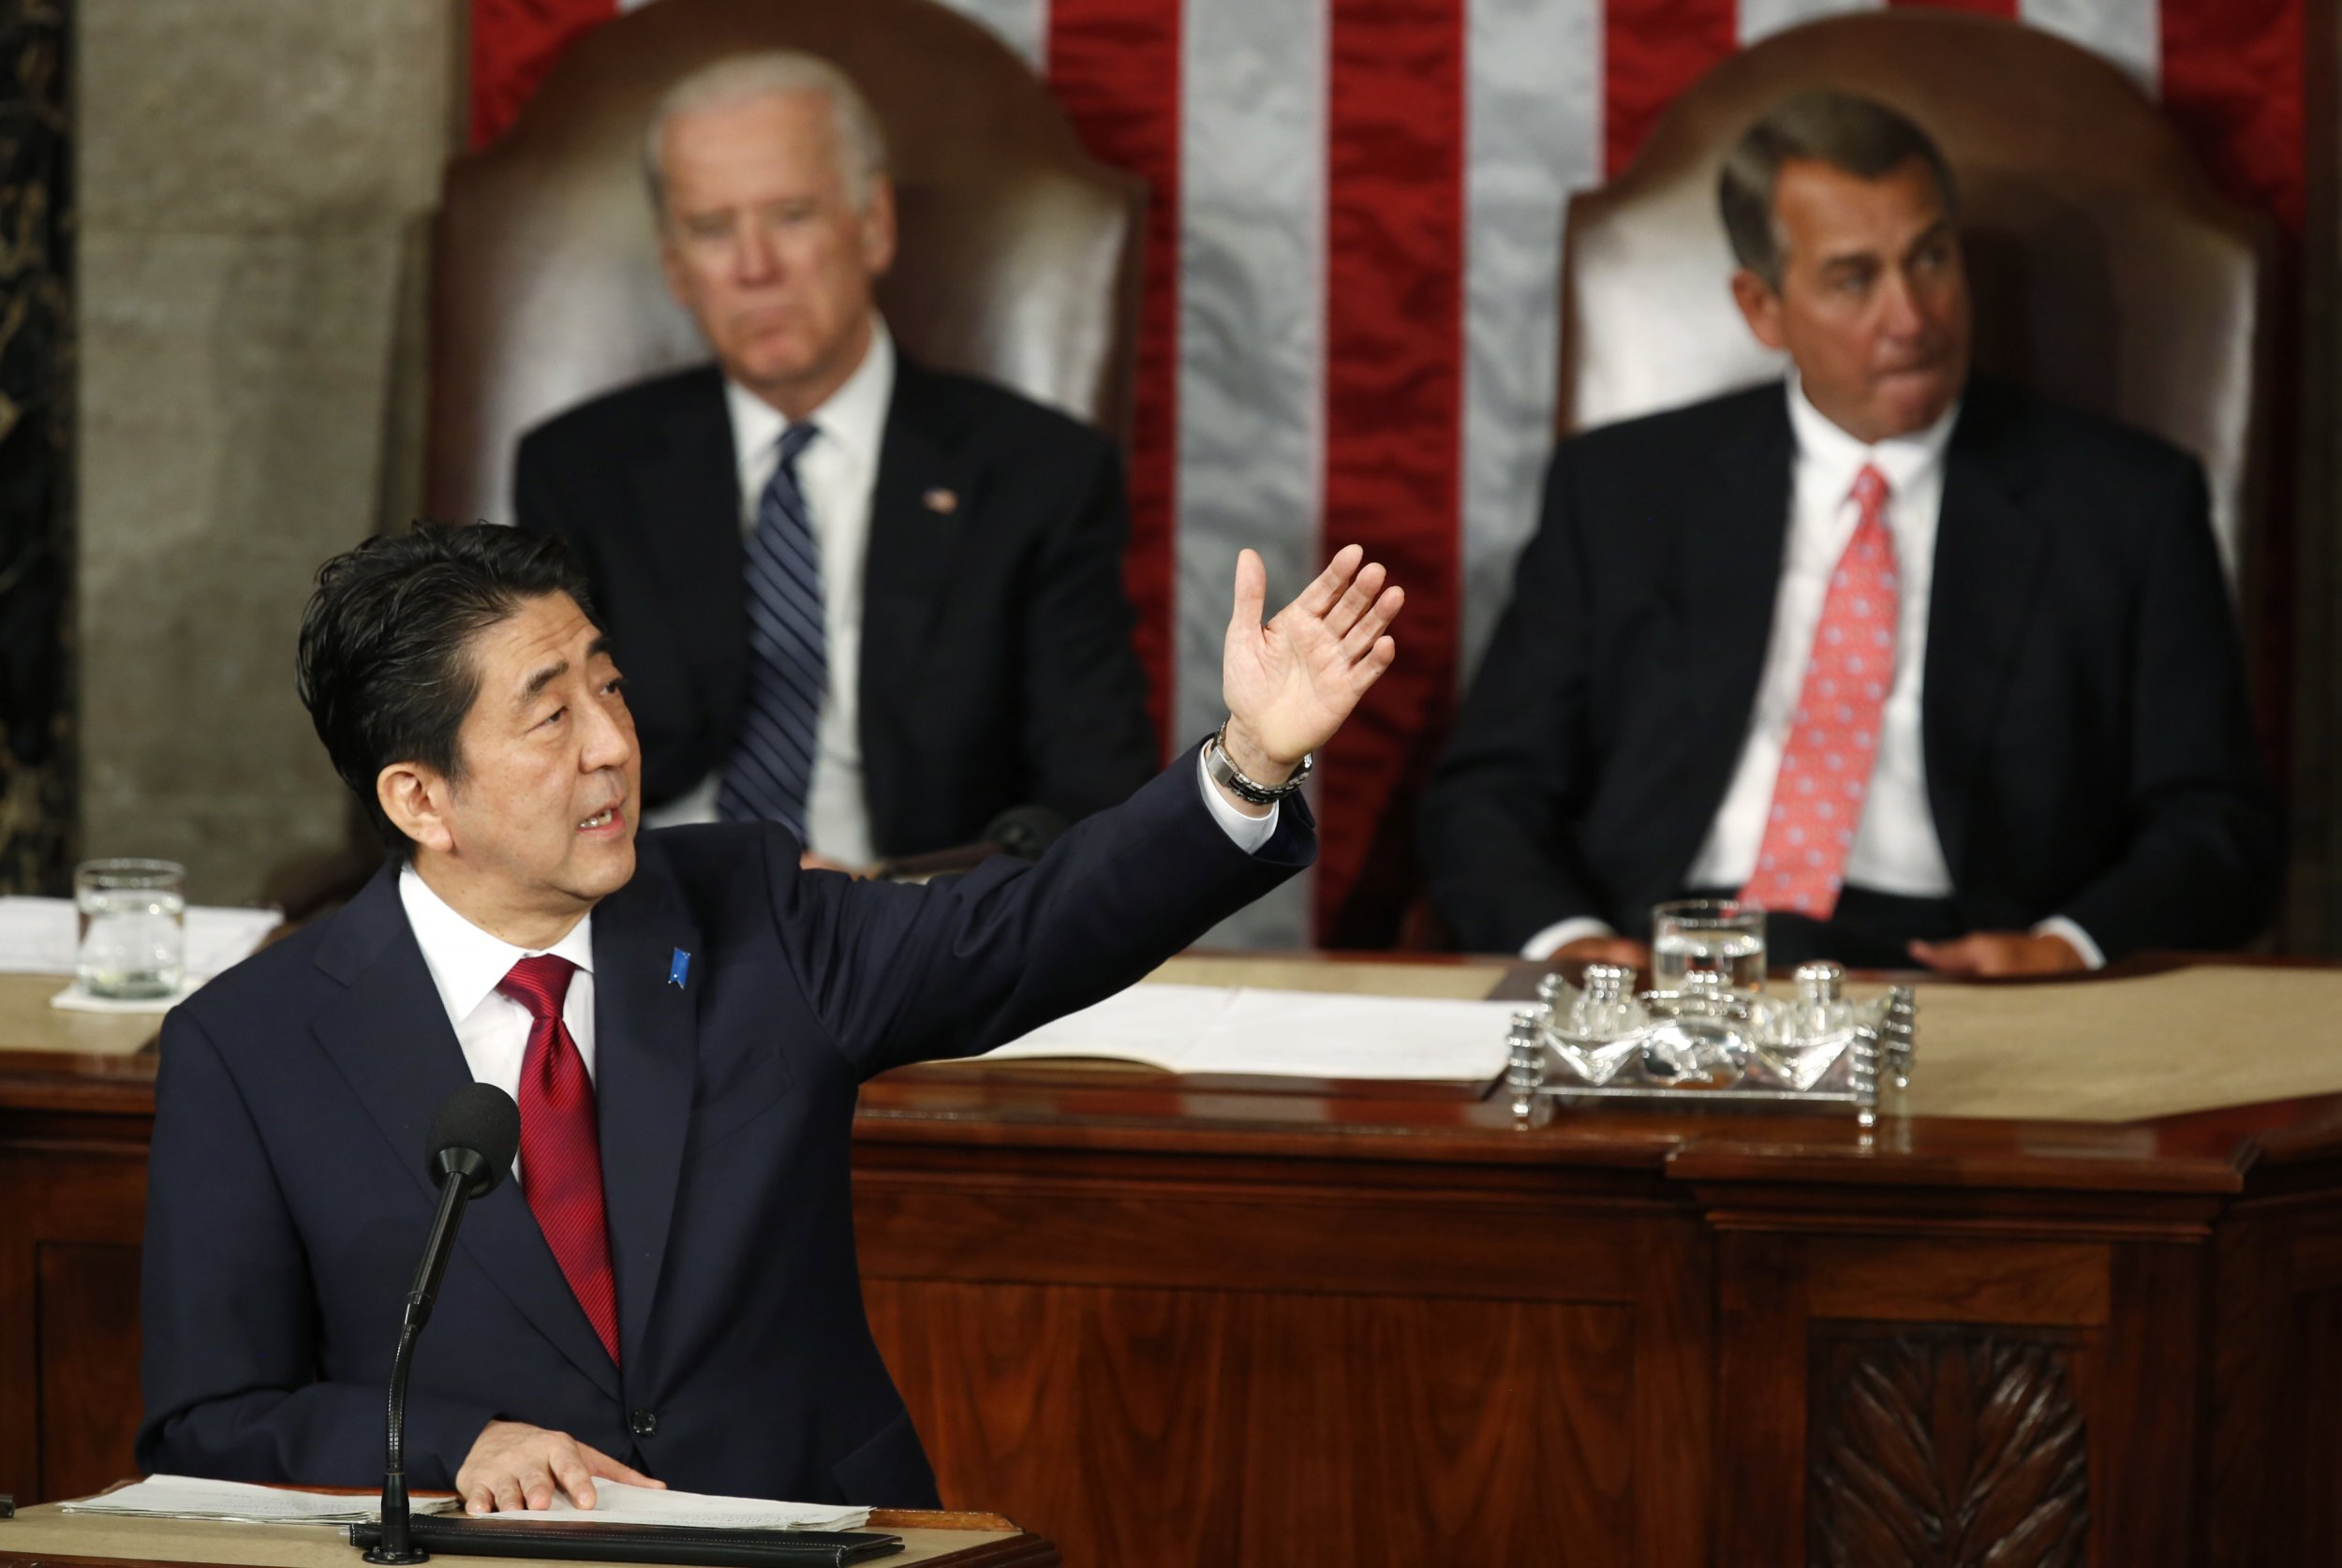 abe stops short of apologizing for WWII